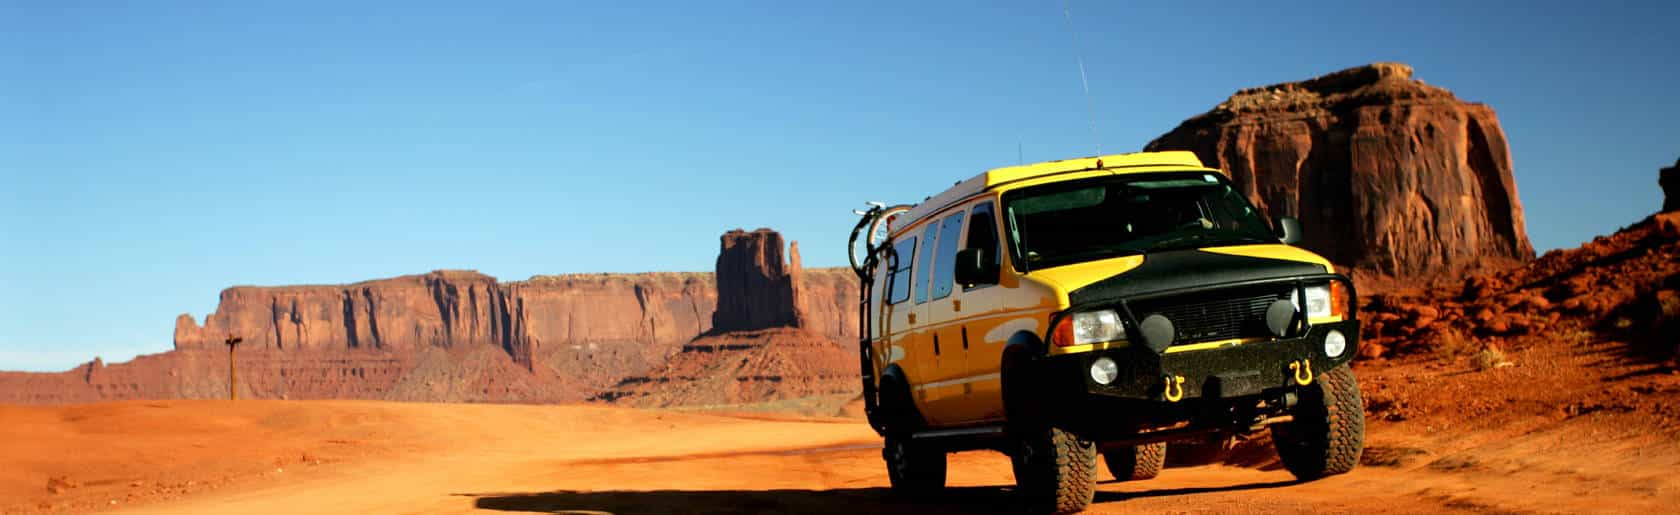 tour-usa-monument-valley